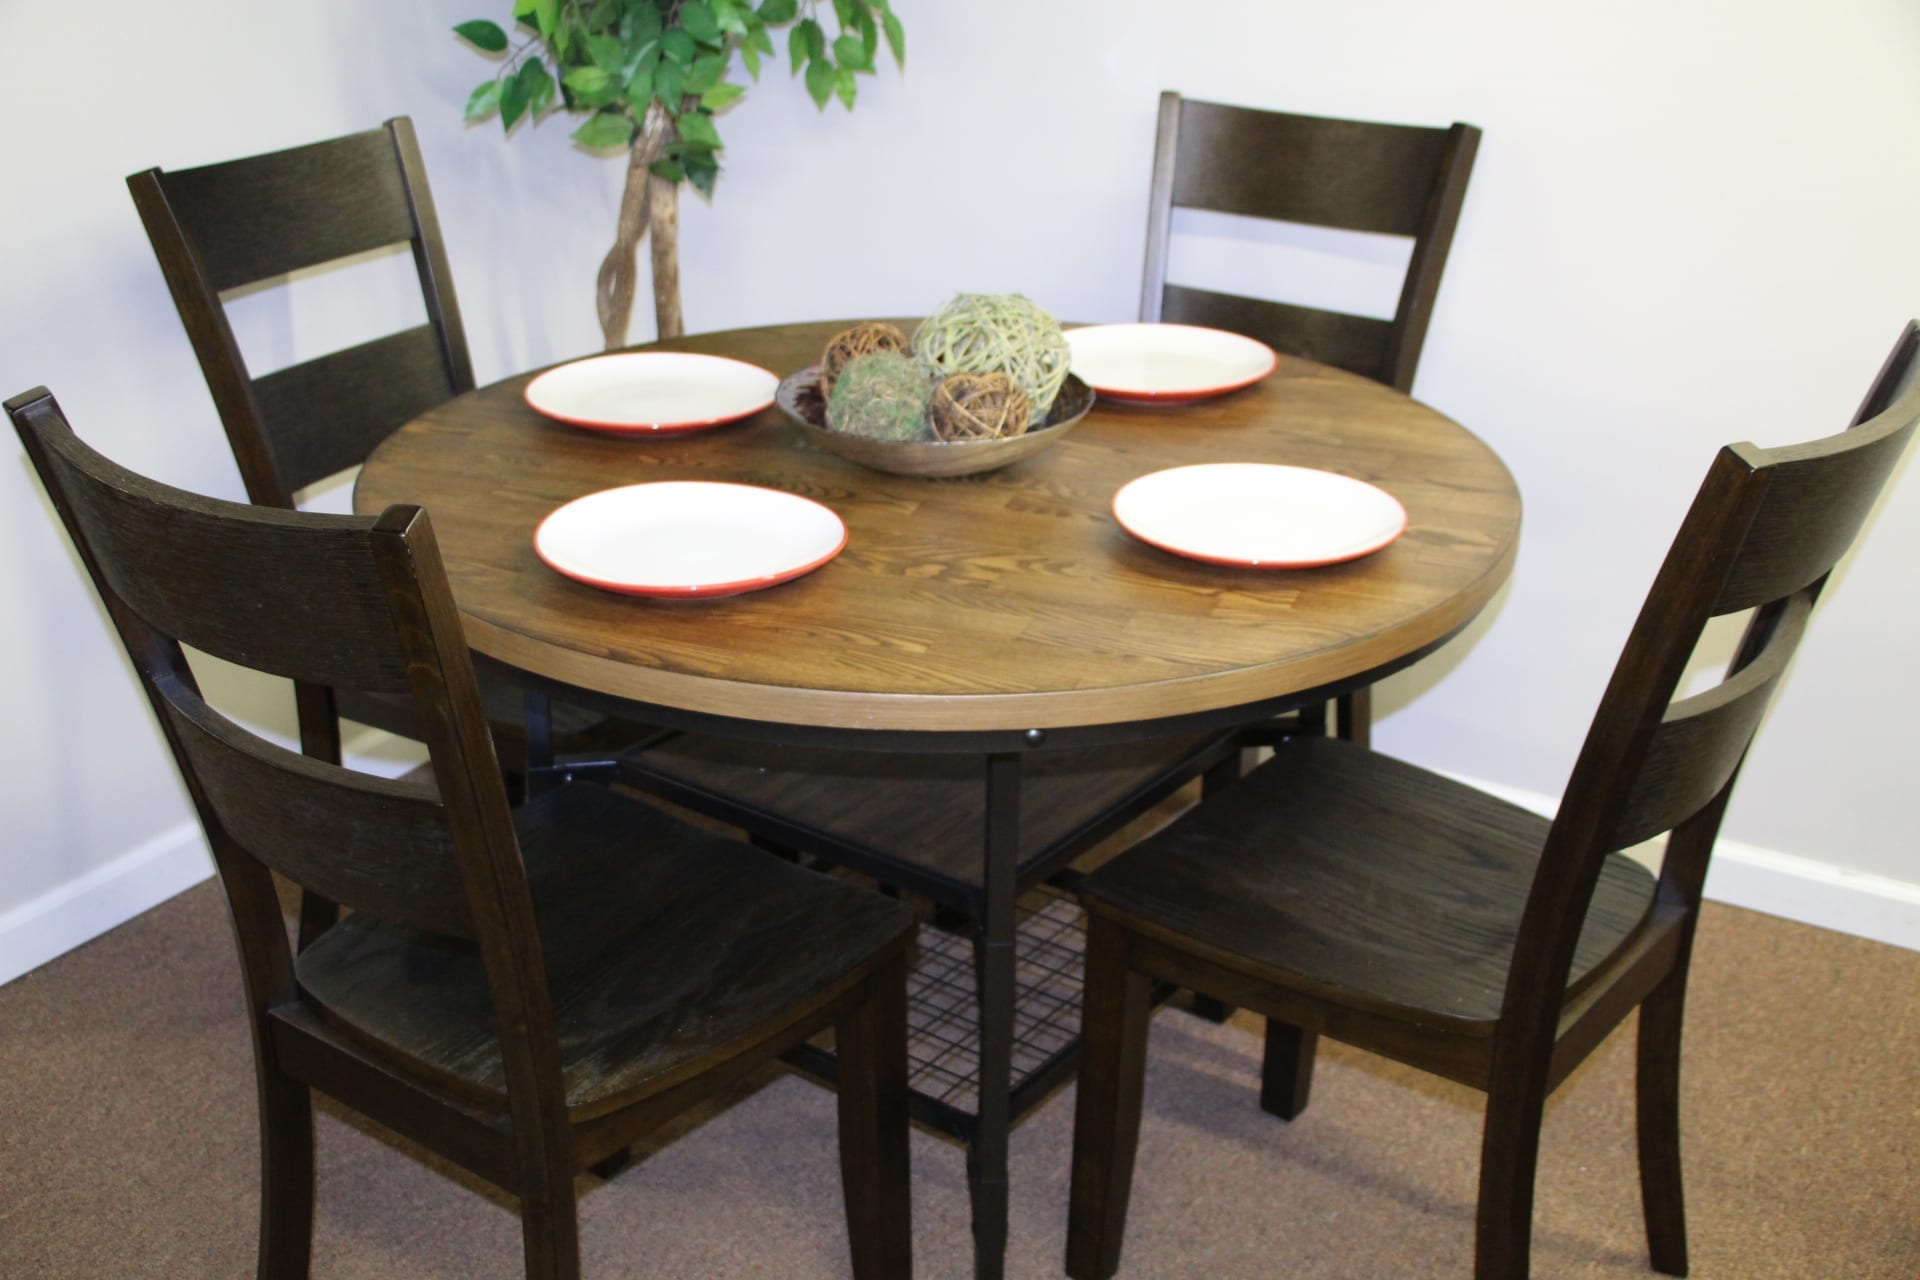 dinette set available for lease Pittsburgh Furniture Leasing